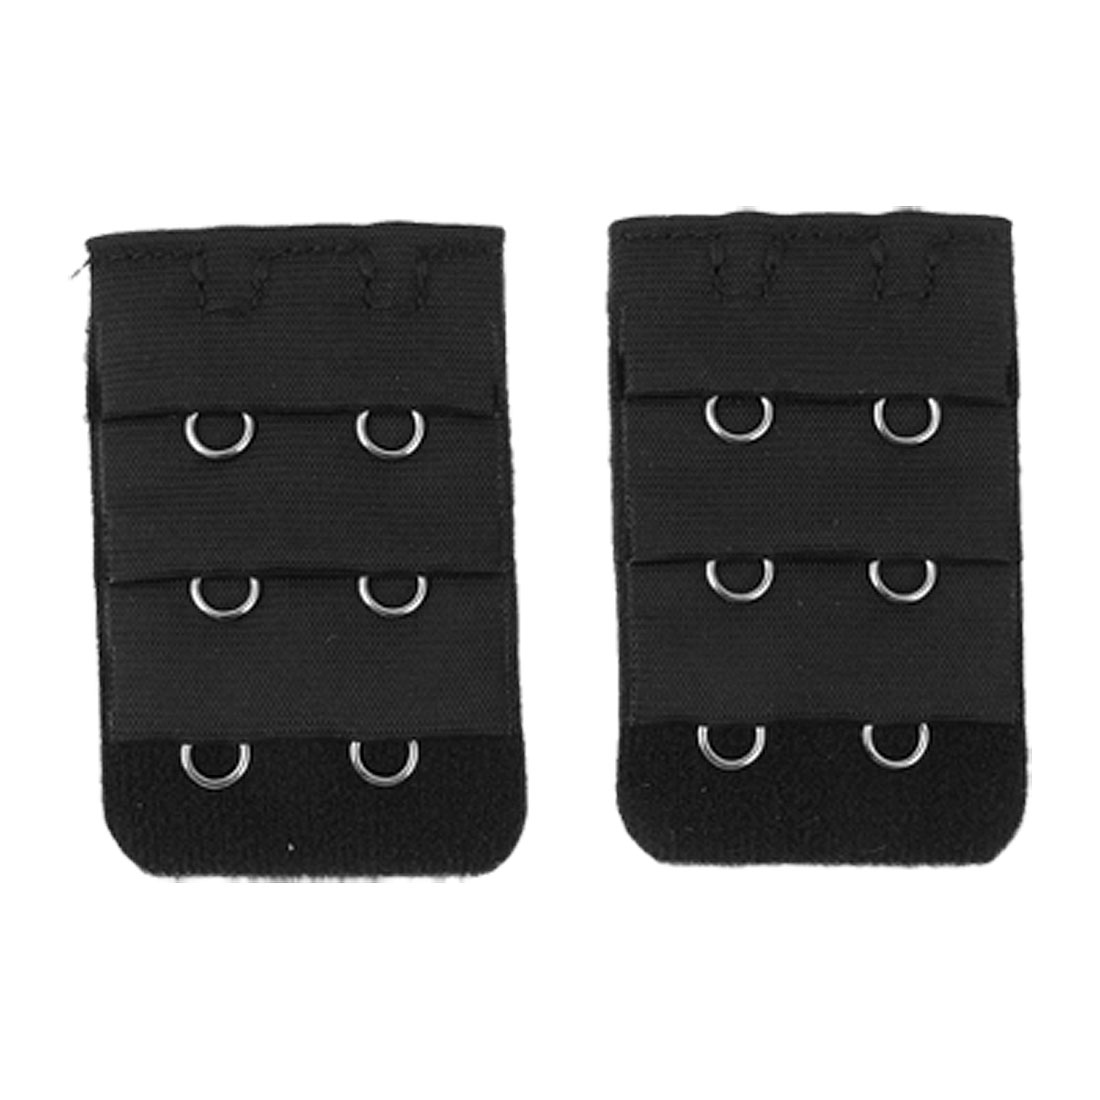 Pair Black 3x2 Hooks Bra Extender Hook and Eye Tape